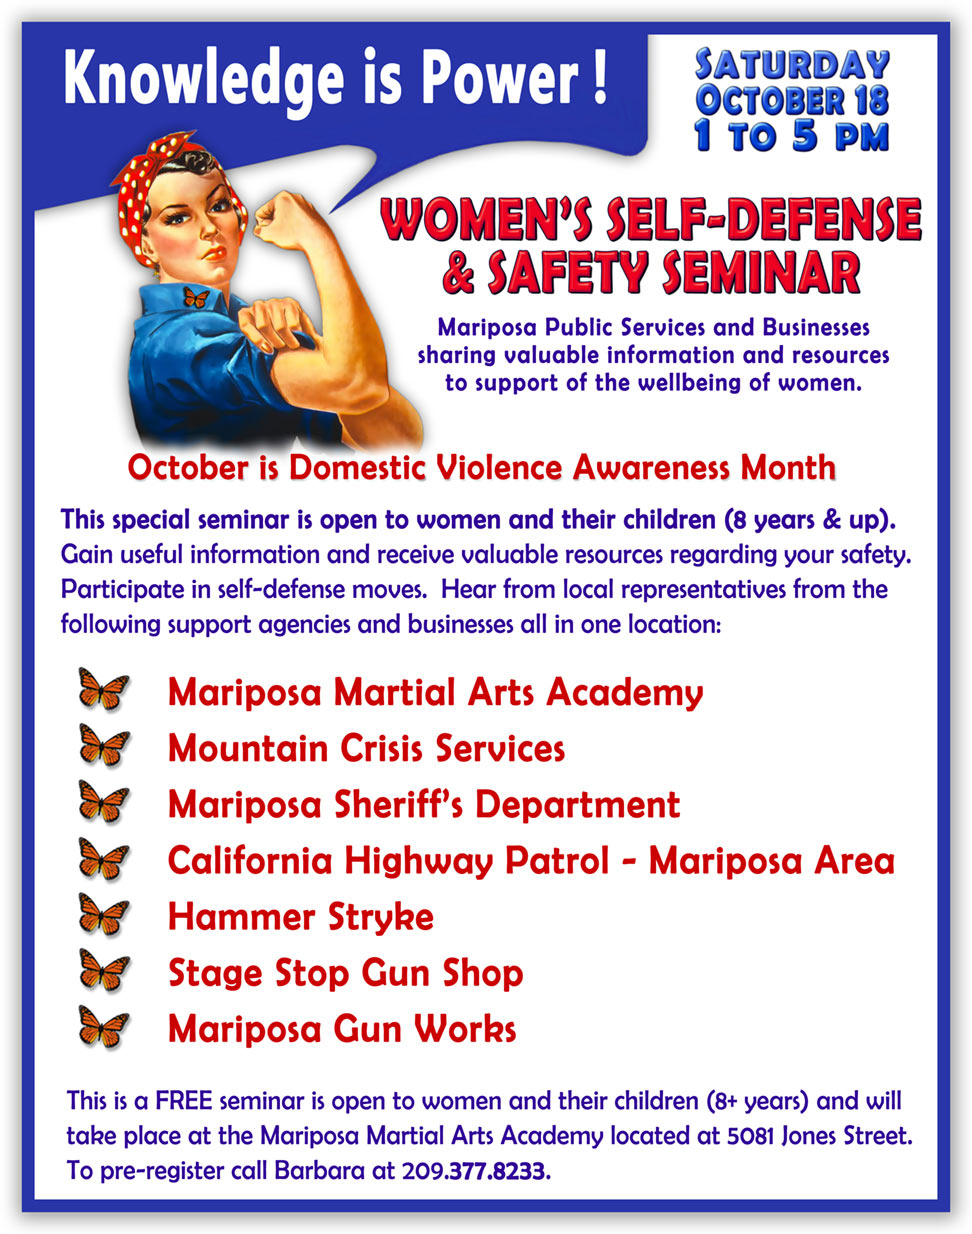 1104 Women S Self Defense Safety Seminar To Be Held In Mariposa On October 18 2014 furthermore Plans And Strategies further Self Will Addiction as well Recovering Alcoholic Helps Addicts Homeless furthermore Riley Led Light Fixture Fan P Lk180led. on transitional housing